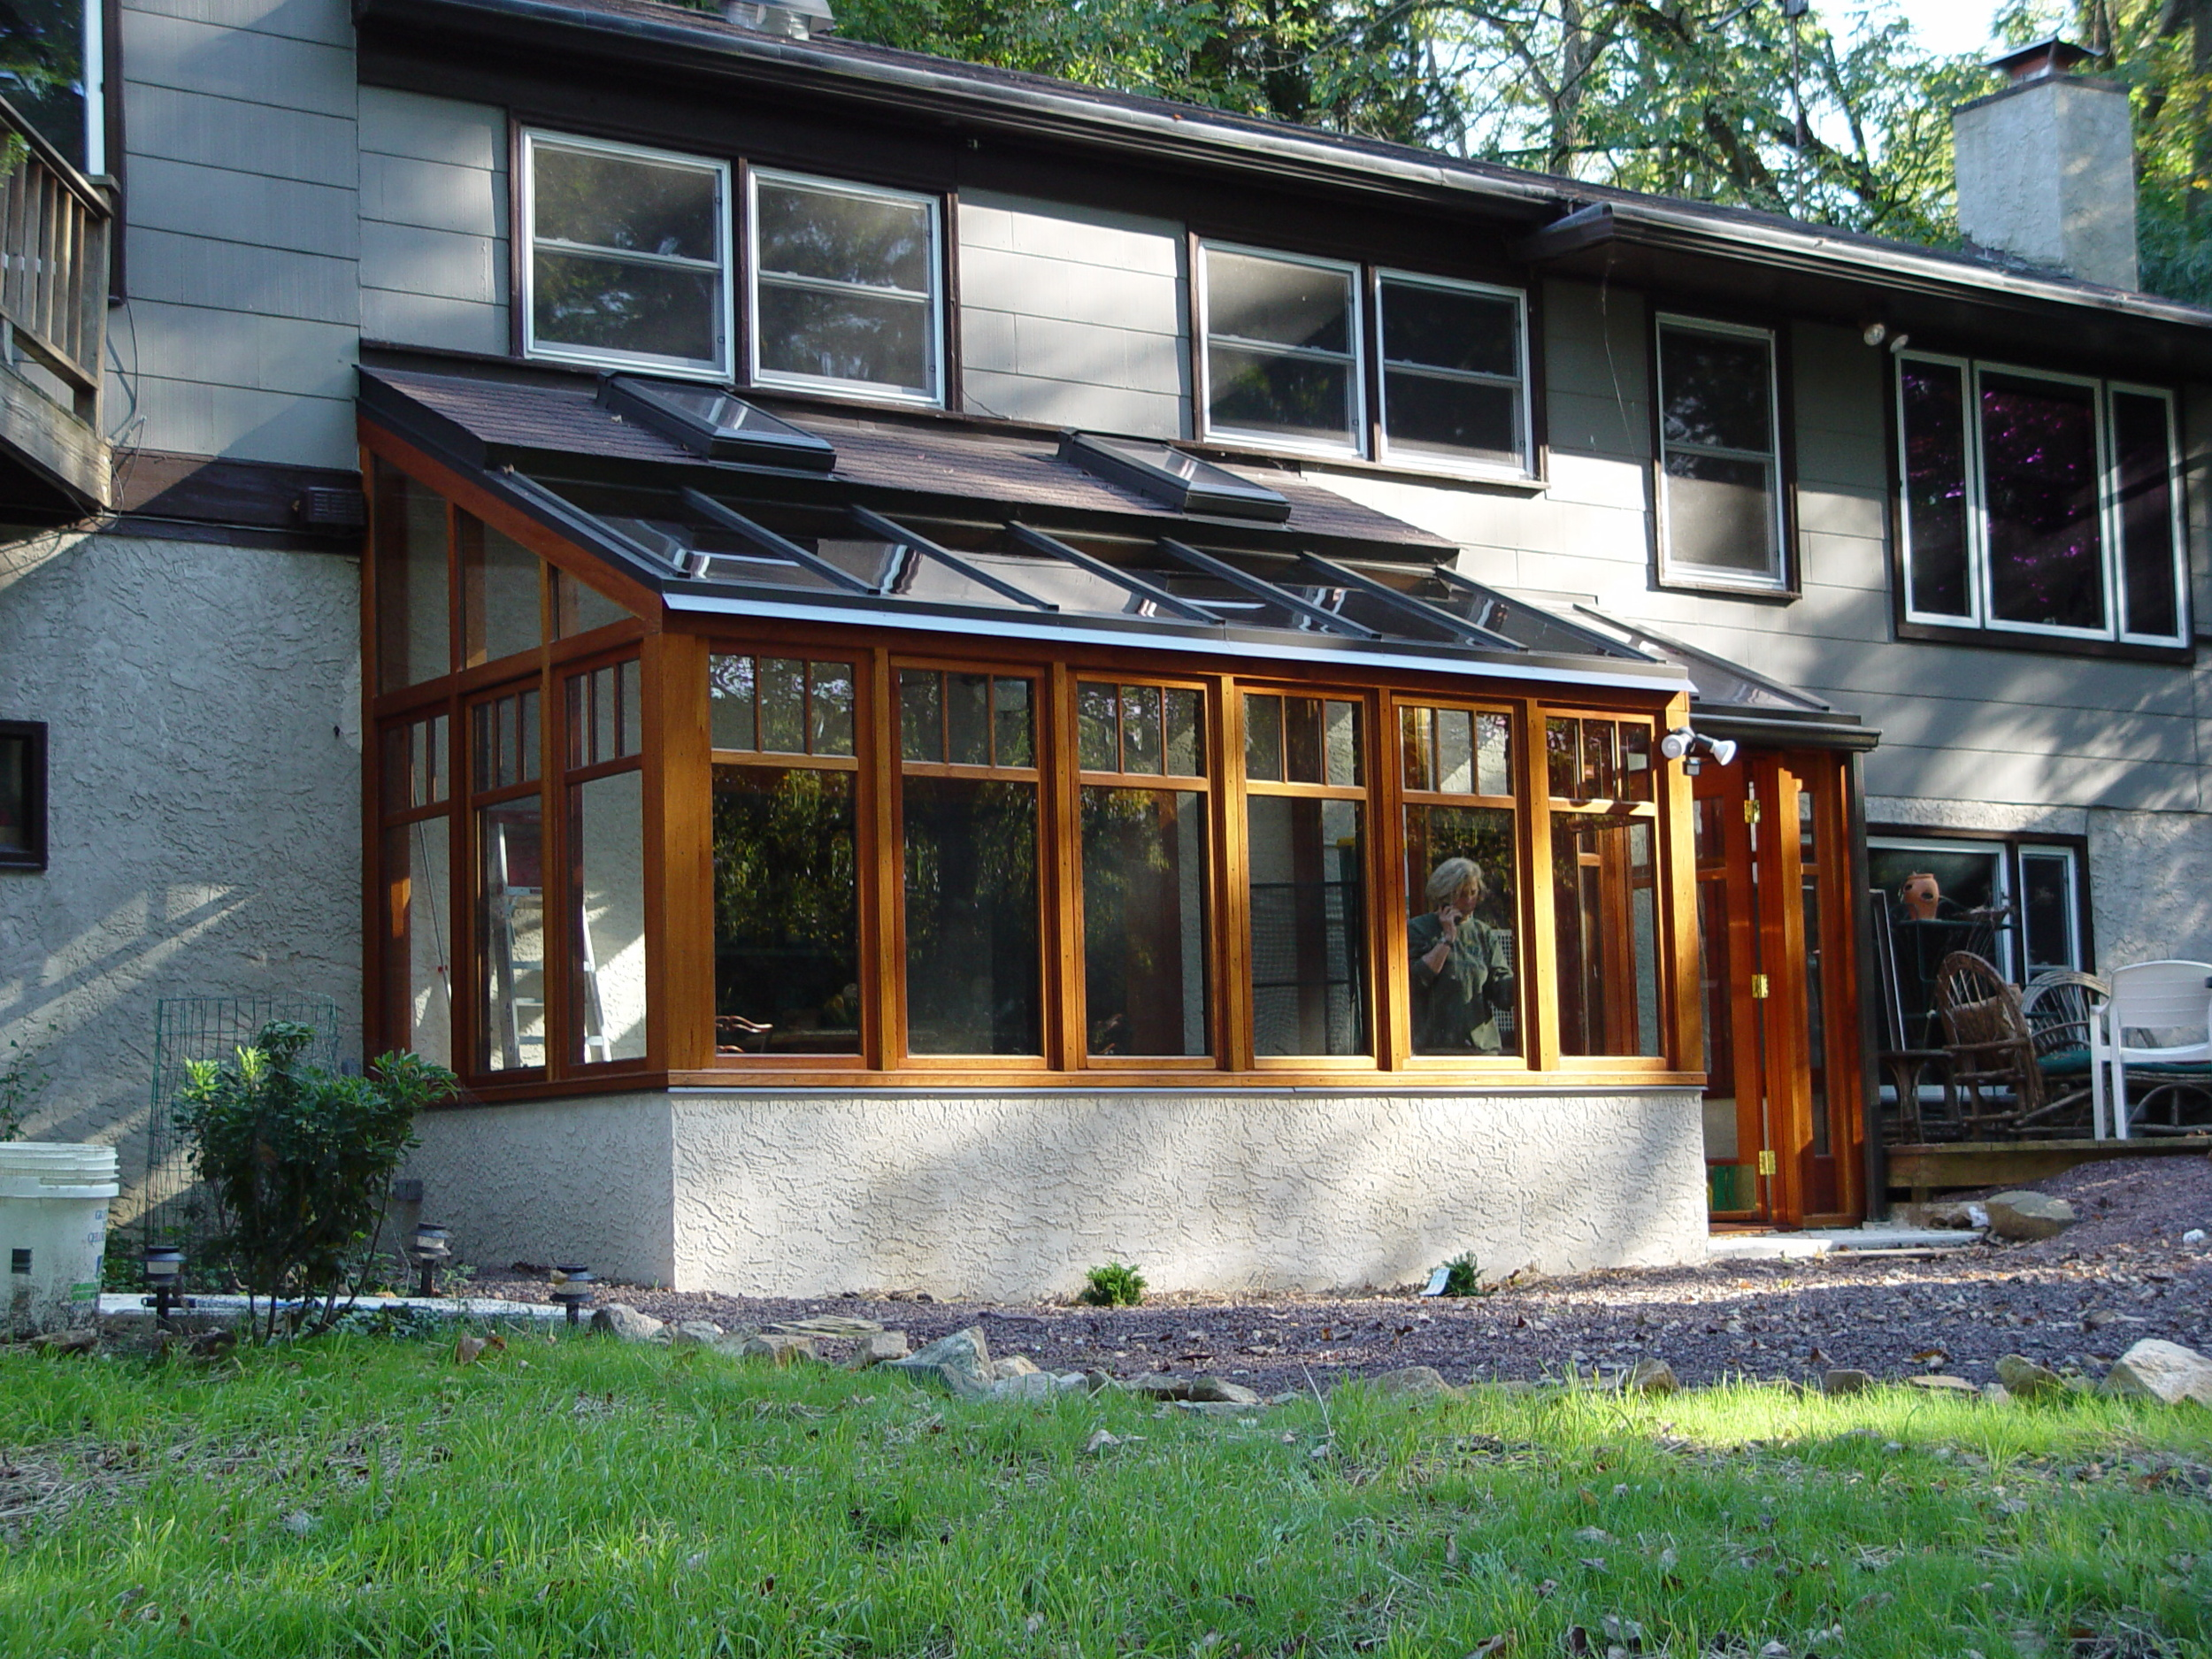 Sunroom / Lean-To Conservatory with Vestibule